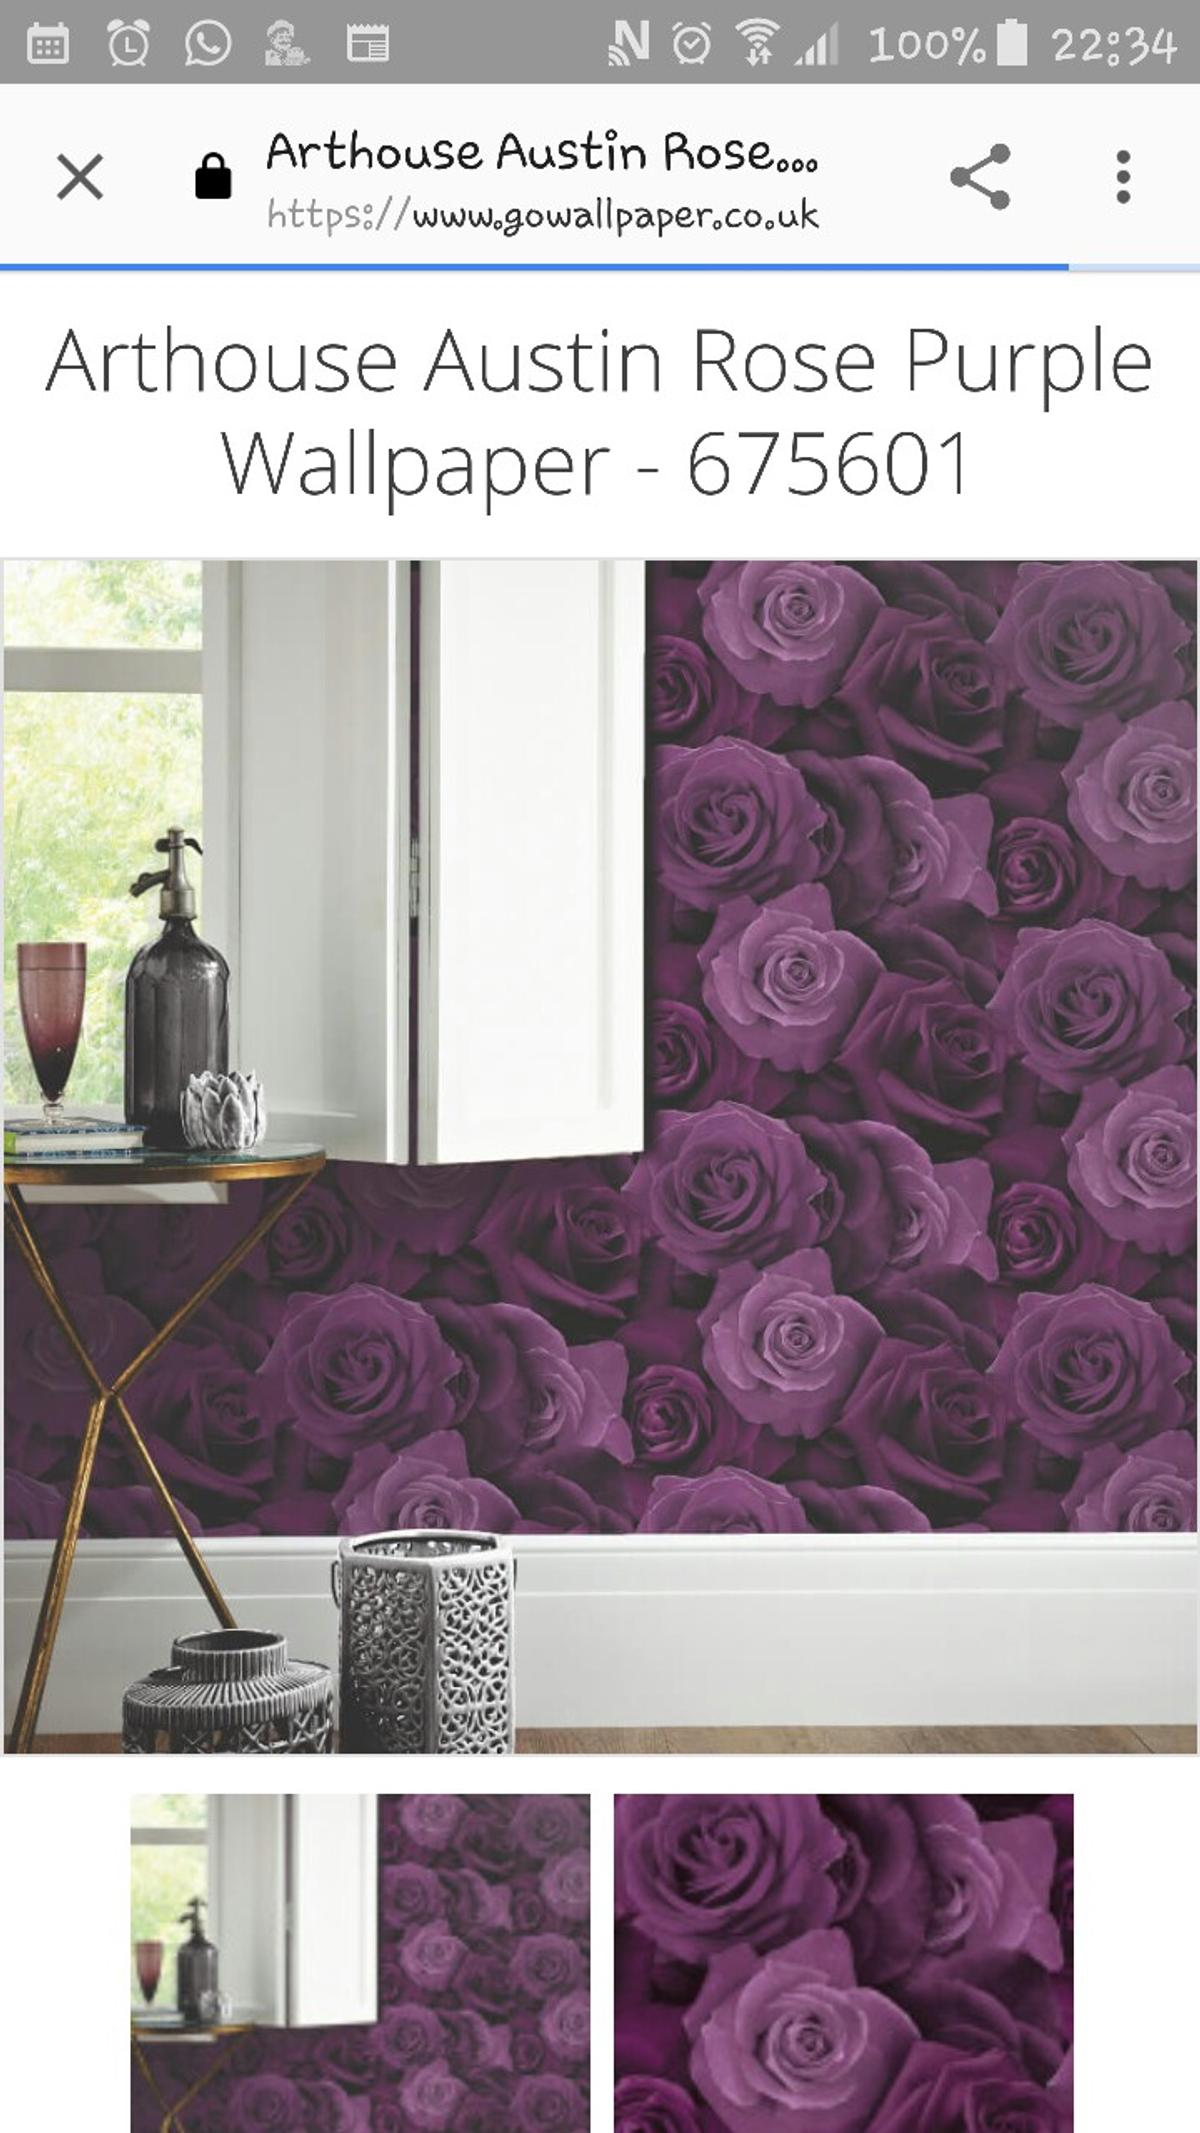 Majsterkowanie Tapety Feature Wall Large Floral Roses Arthouse Austin Rose Purple Wallpaper 675601